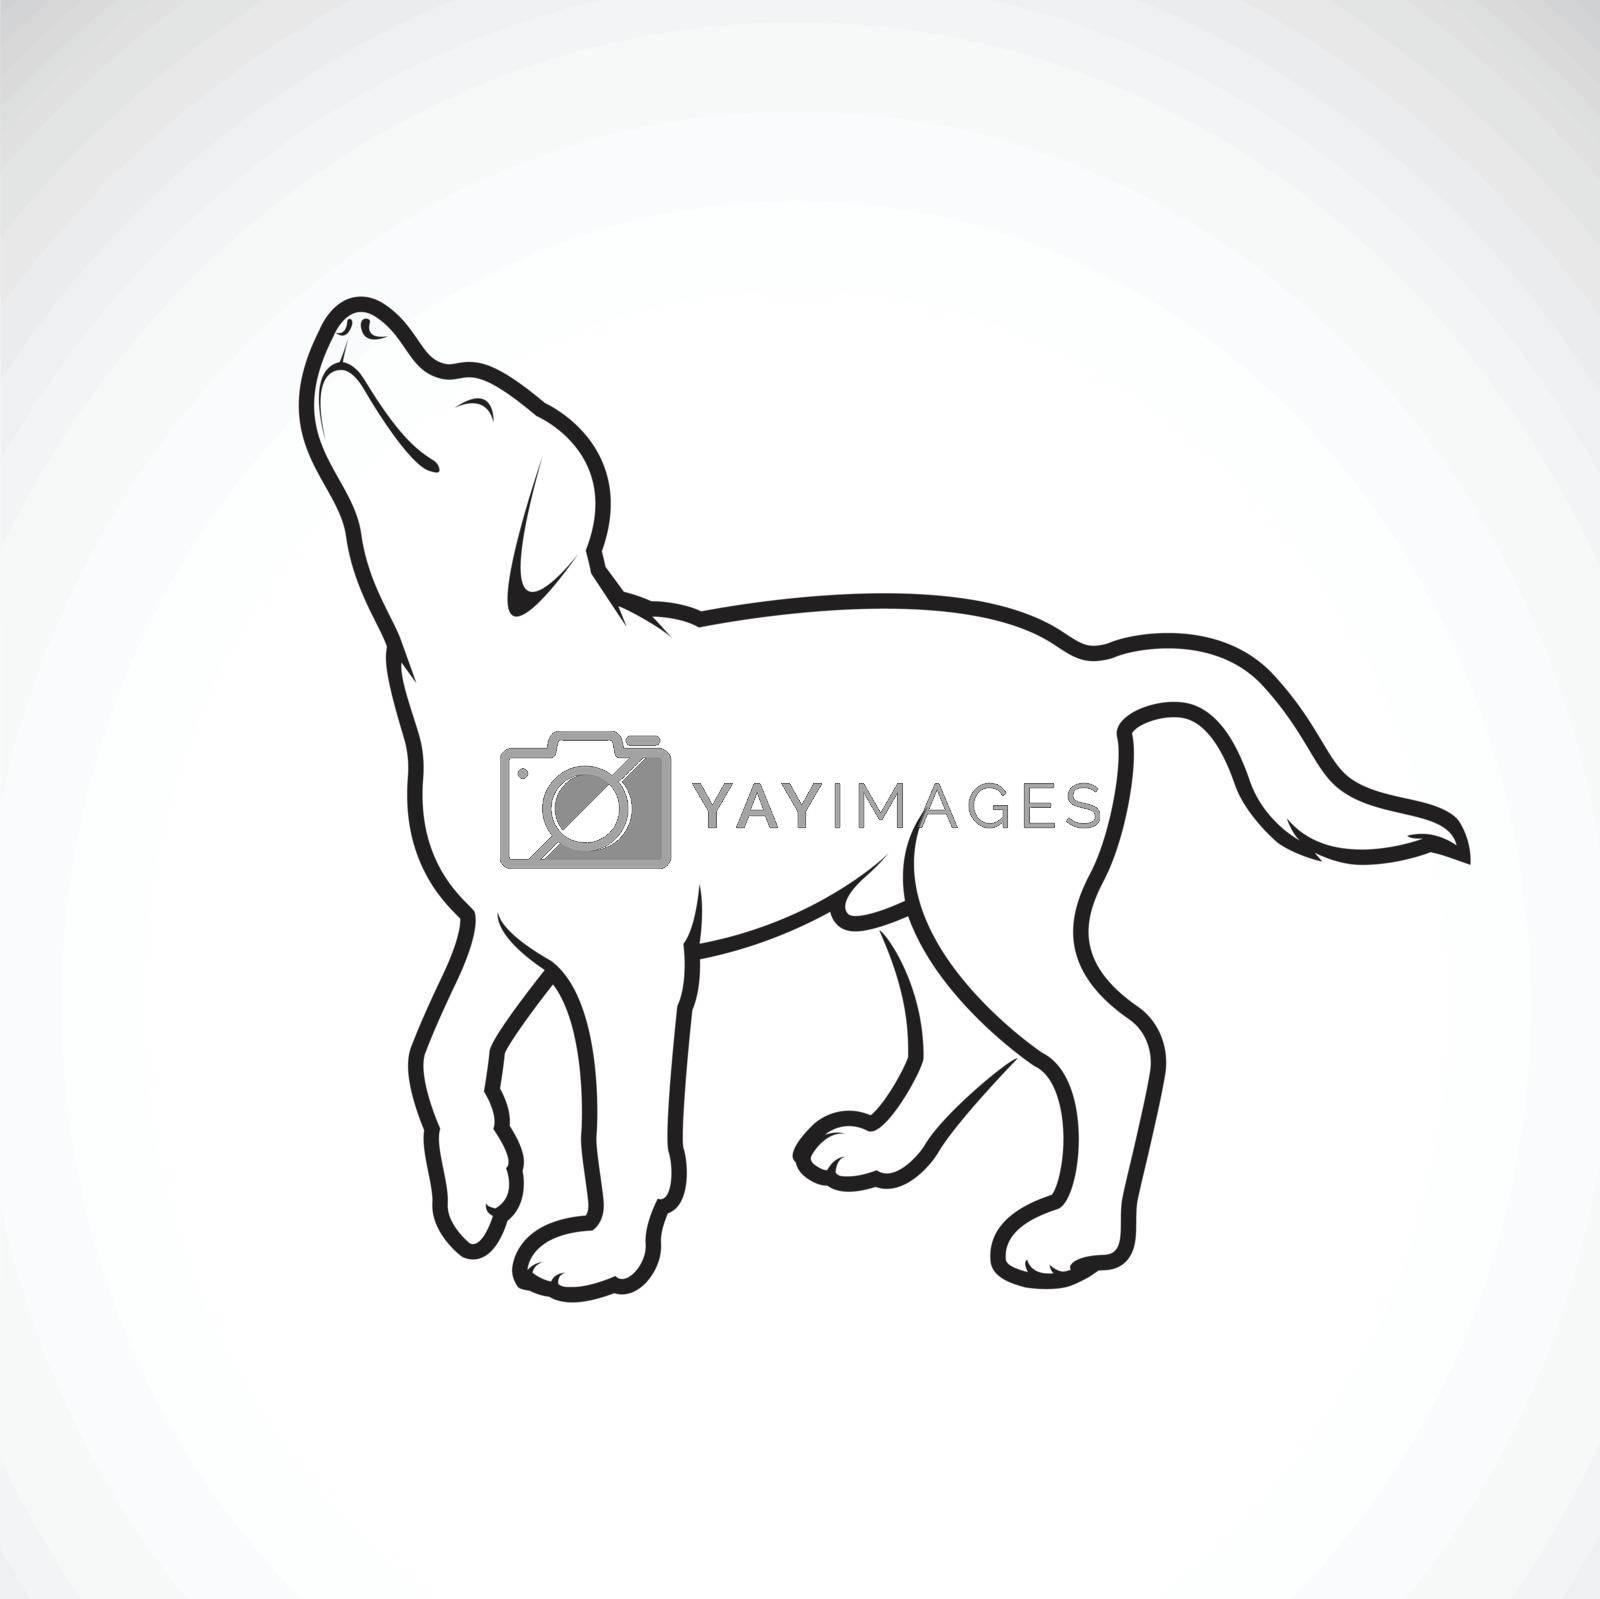 Vector Of A Dog Labrador On White Background Pet Animals Easy Royalty Free Stock Image Stock Photos Royalty Free Images Vectors Footage Yayimages